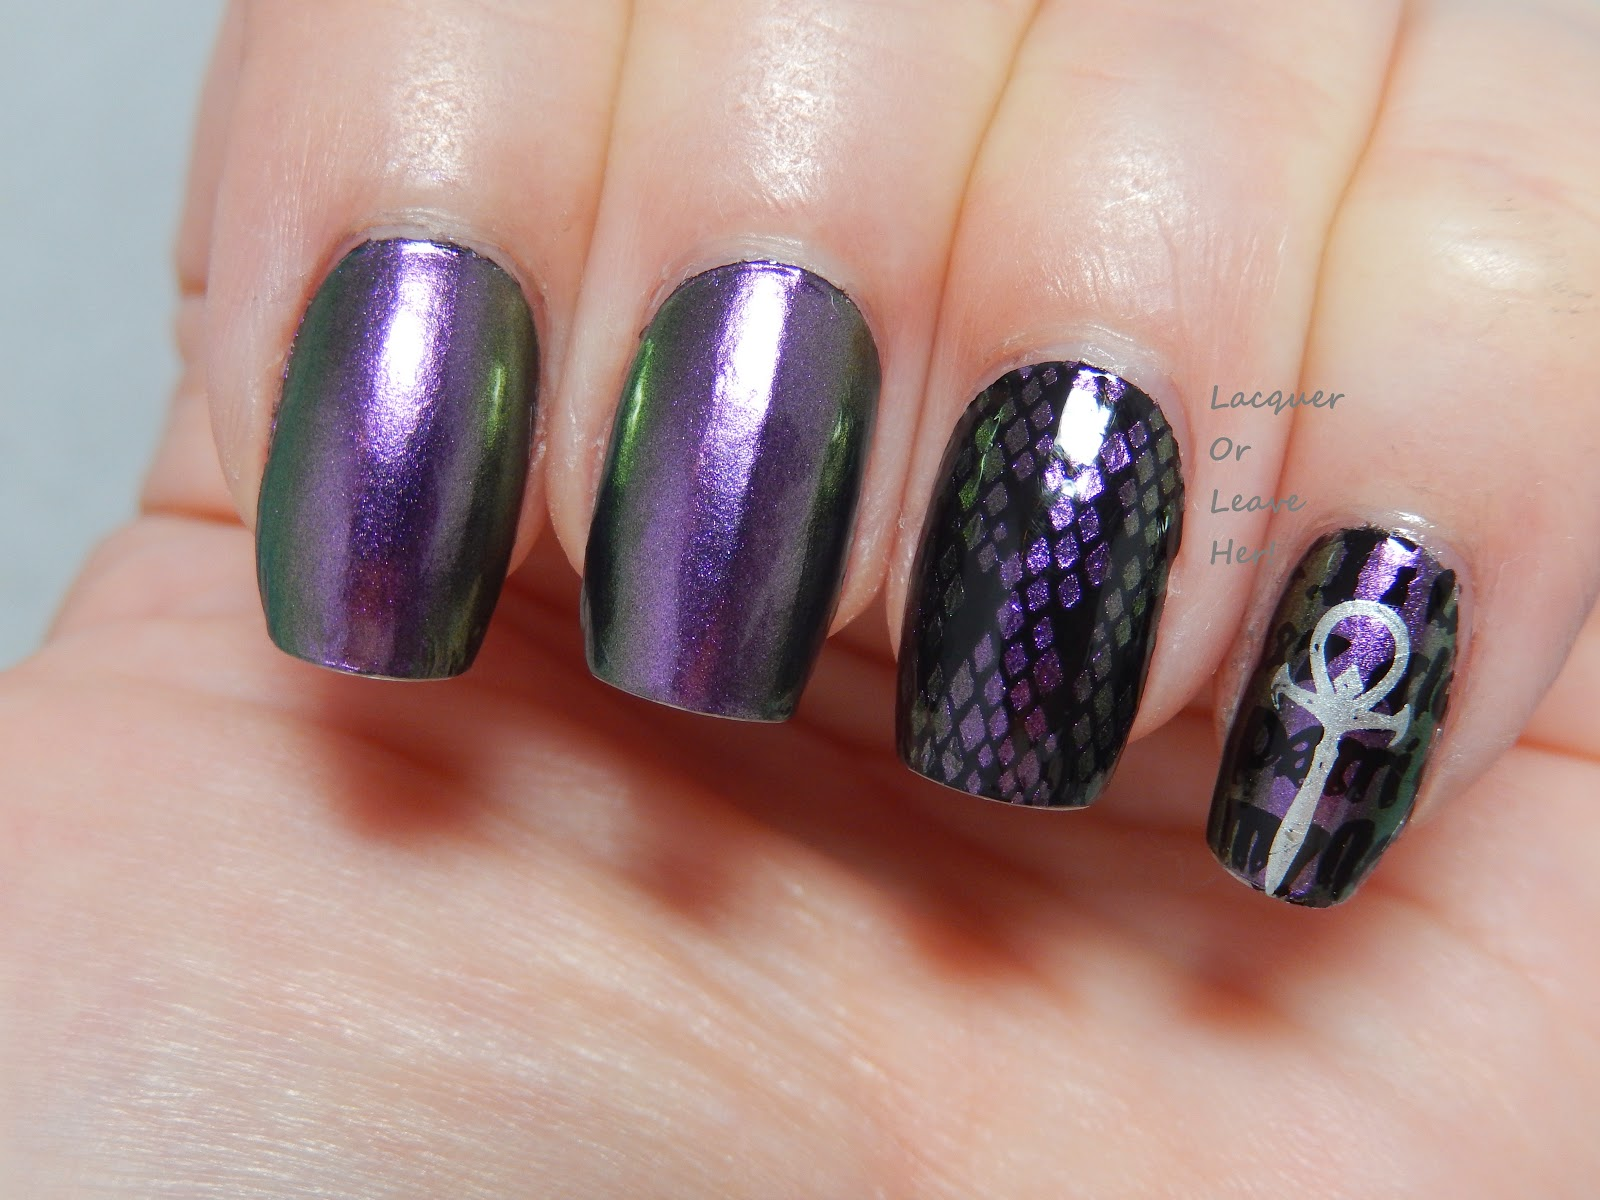 Incoco Double Take + MoYou Gothic collection